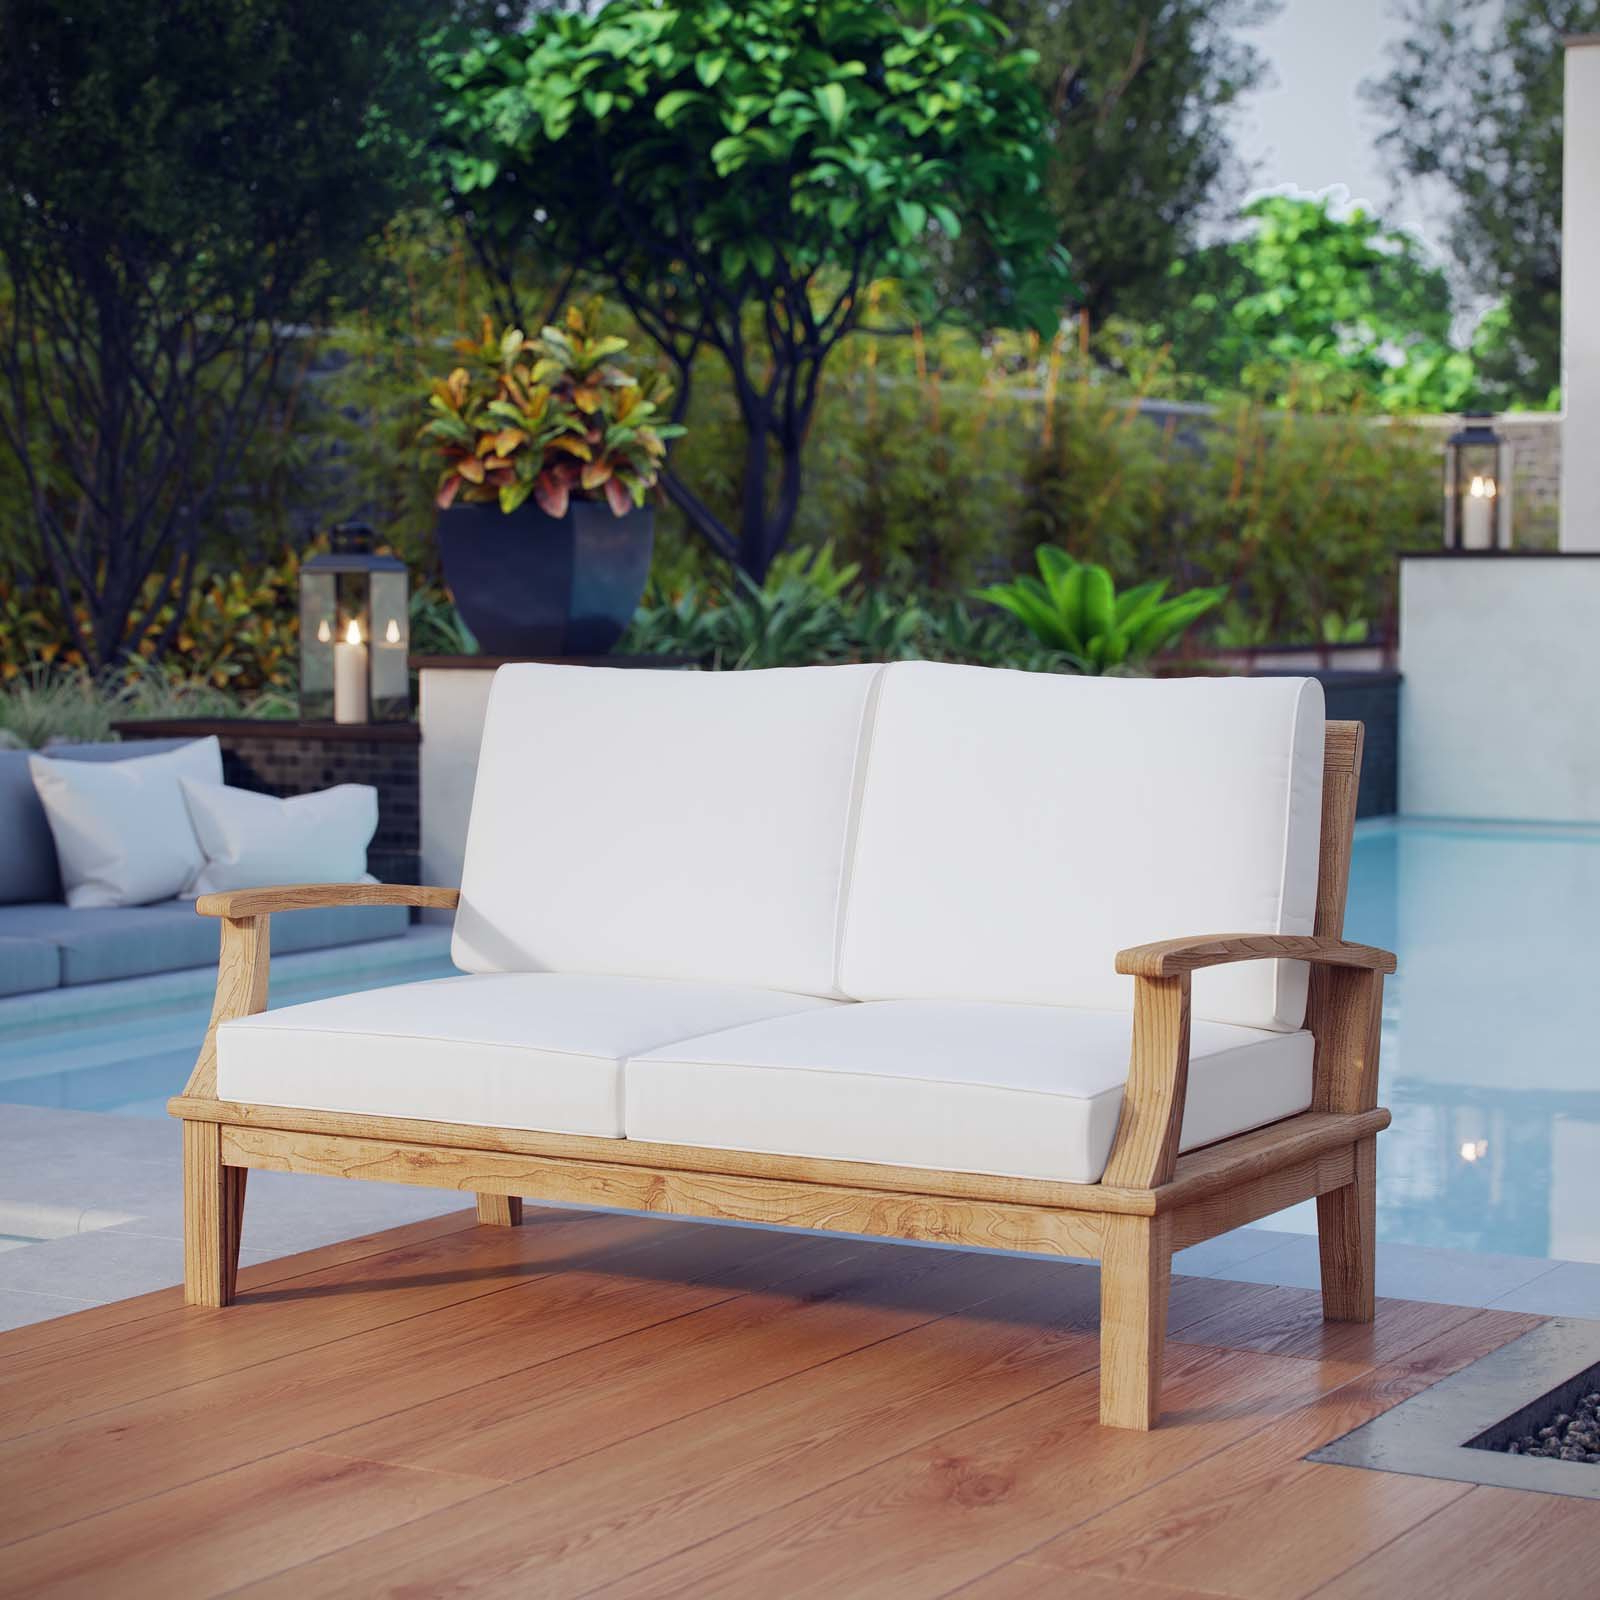 Montford Teak Loveseats With Cushions Regarding Current Elaina Teak Loveseat With Cushions (View 9 of 20)